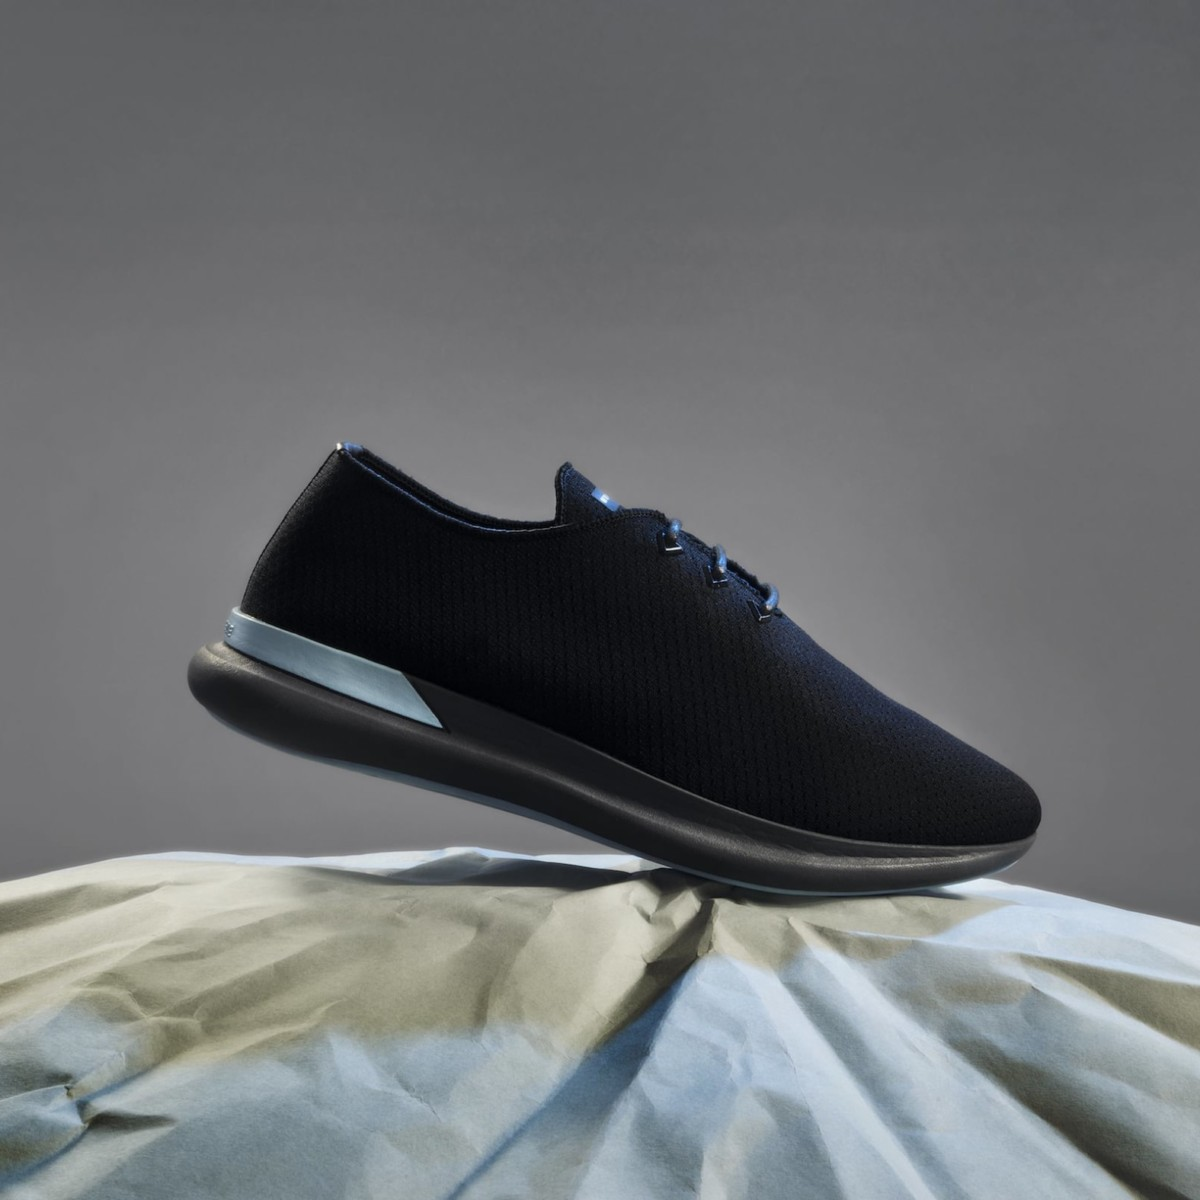 Pathfinder Minimalist Travel Shoes feature advanced knit technology